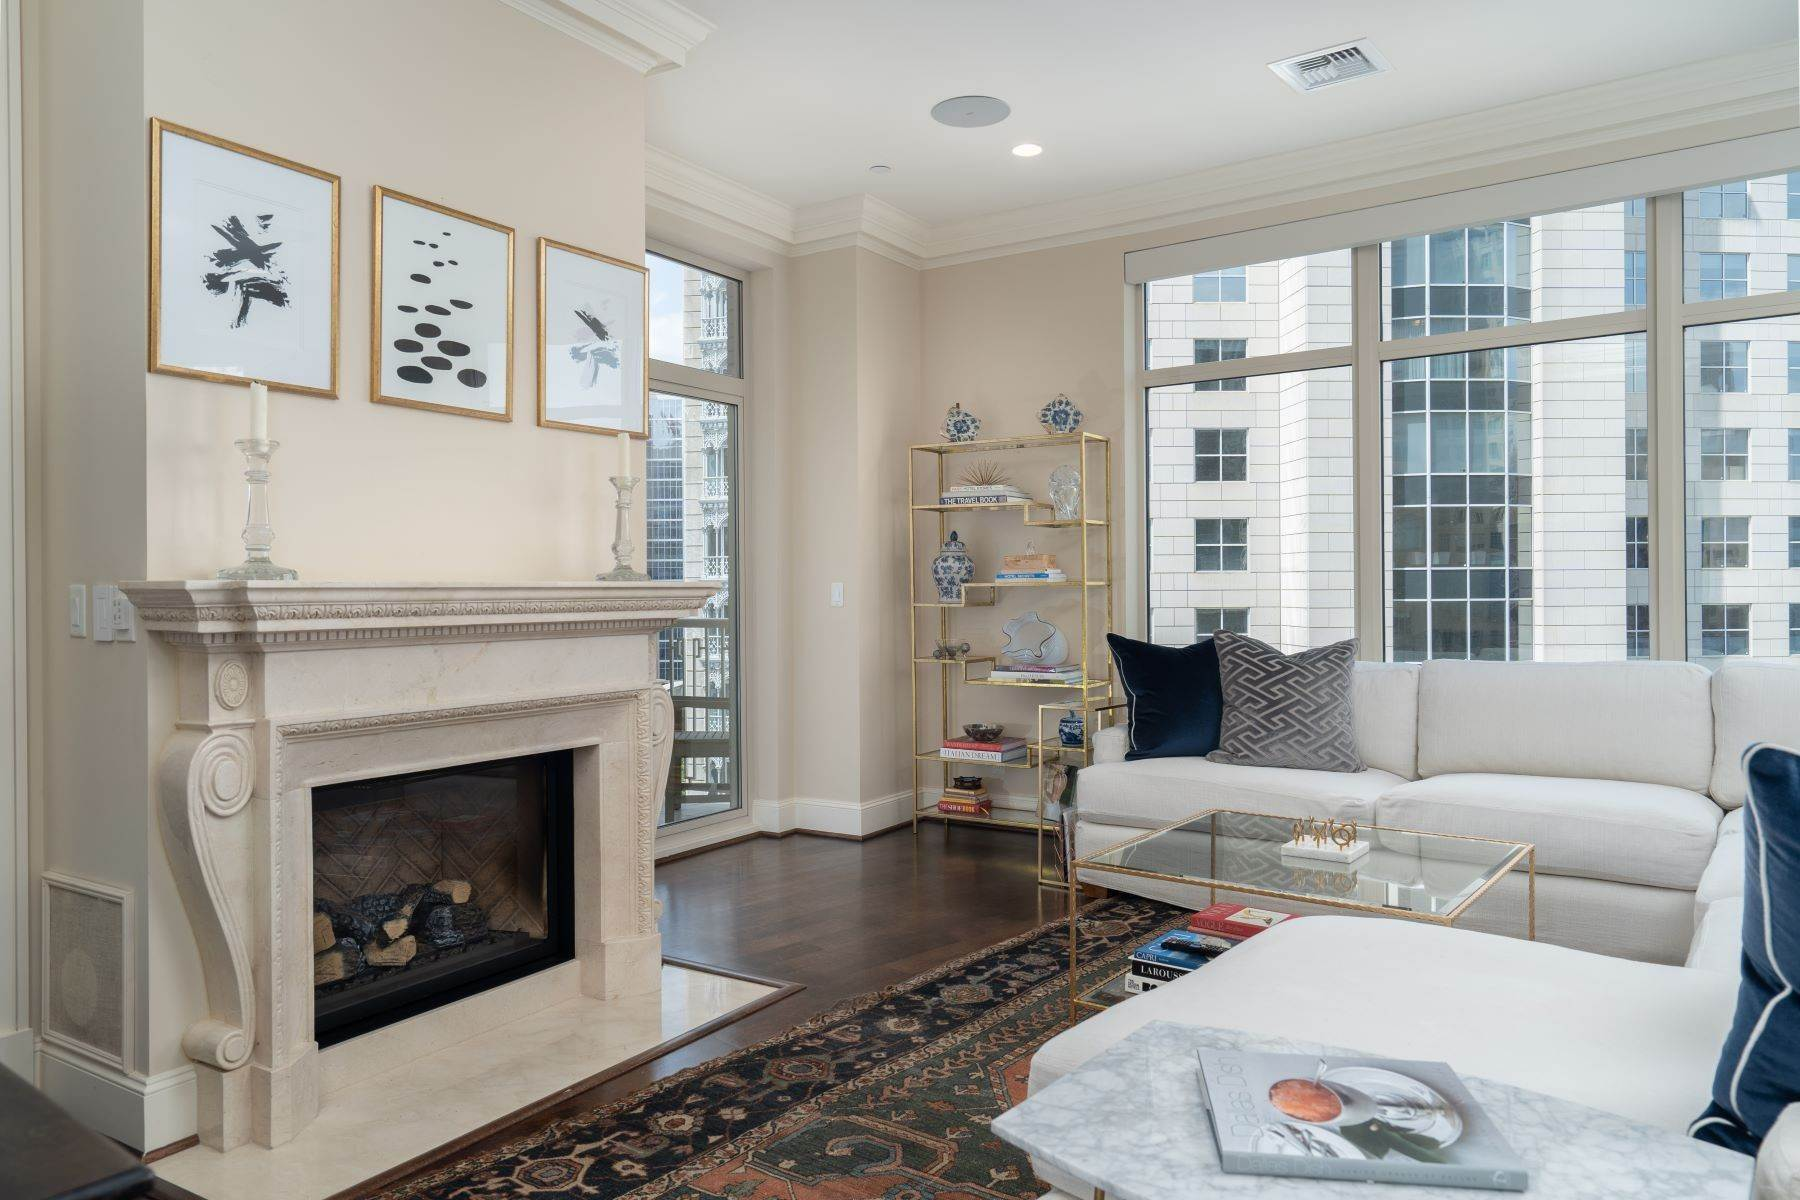 6. Condominiums for Sale at Ritz-Carlton Luxury and Convenience 2555 N. Pearl Street, #1004 Dallas, Texas 75201 United States